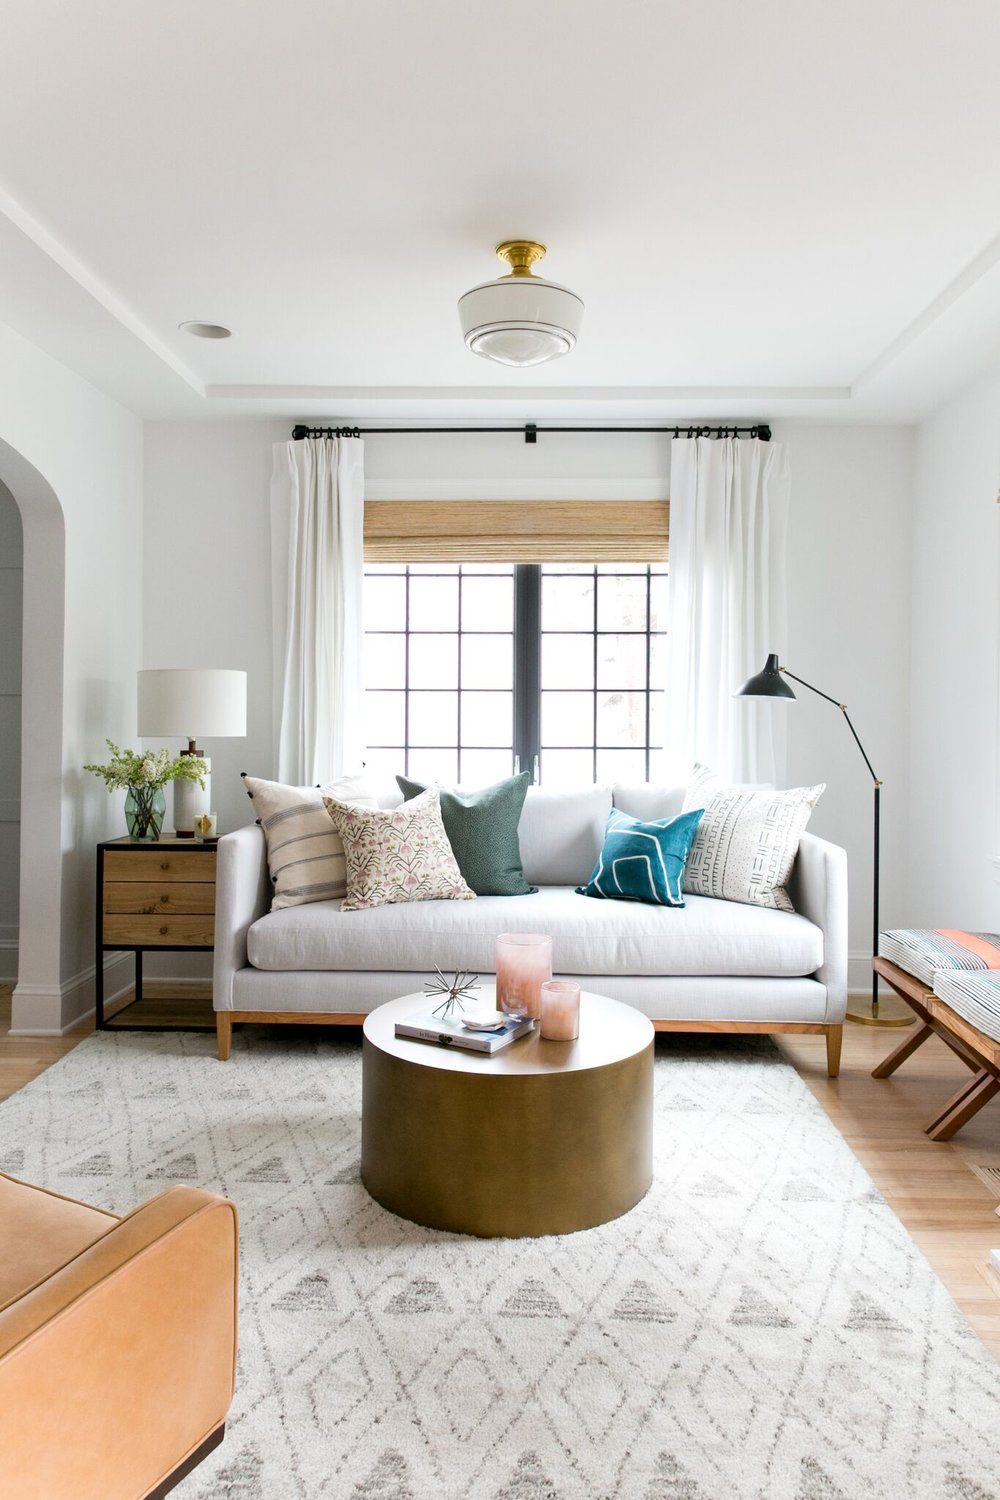 ... Style It Is, It Will Always Look Off. We Recommend Taping It Out To  Scale Prior To Ordering To Make Sure You Like The Size Of The Sofa In Your  Space.